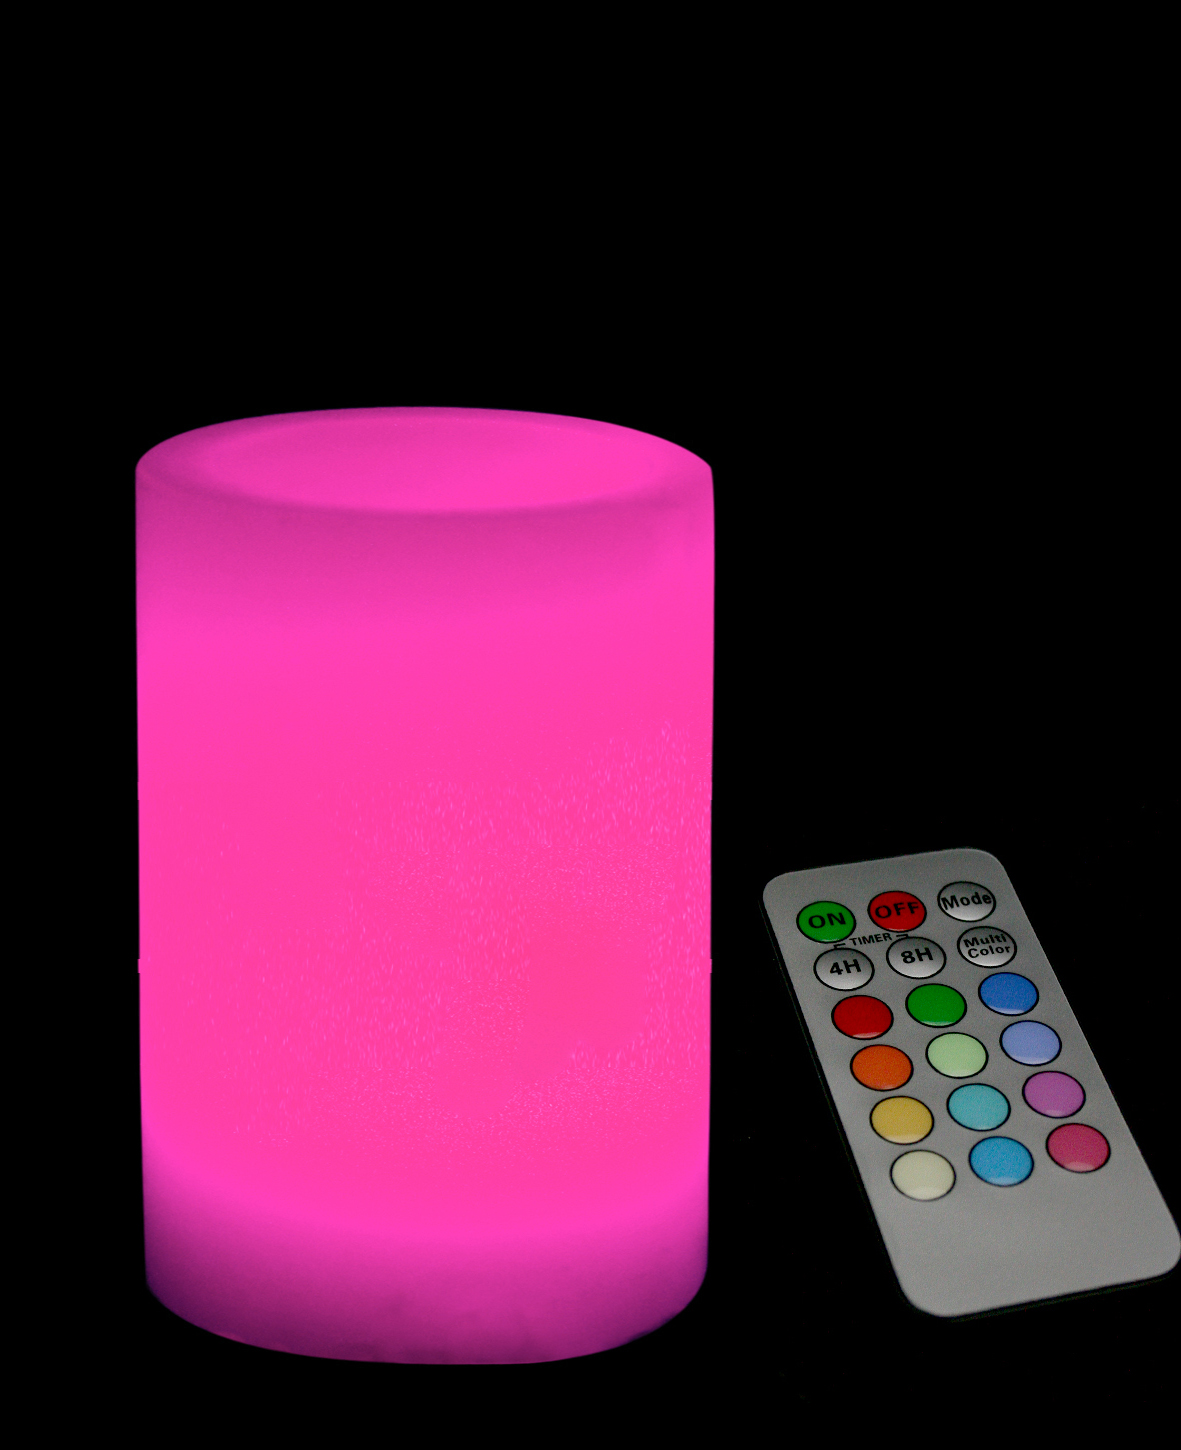 5 Inch Flameless Remote Control Pillar Candle - Smooth Edge - Multicolor